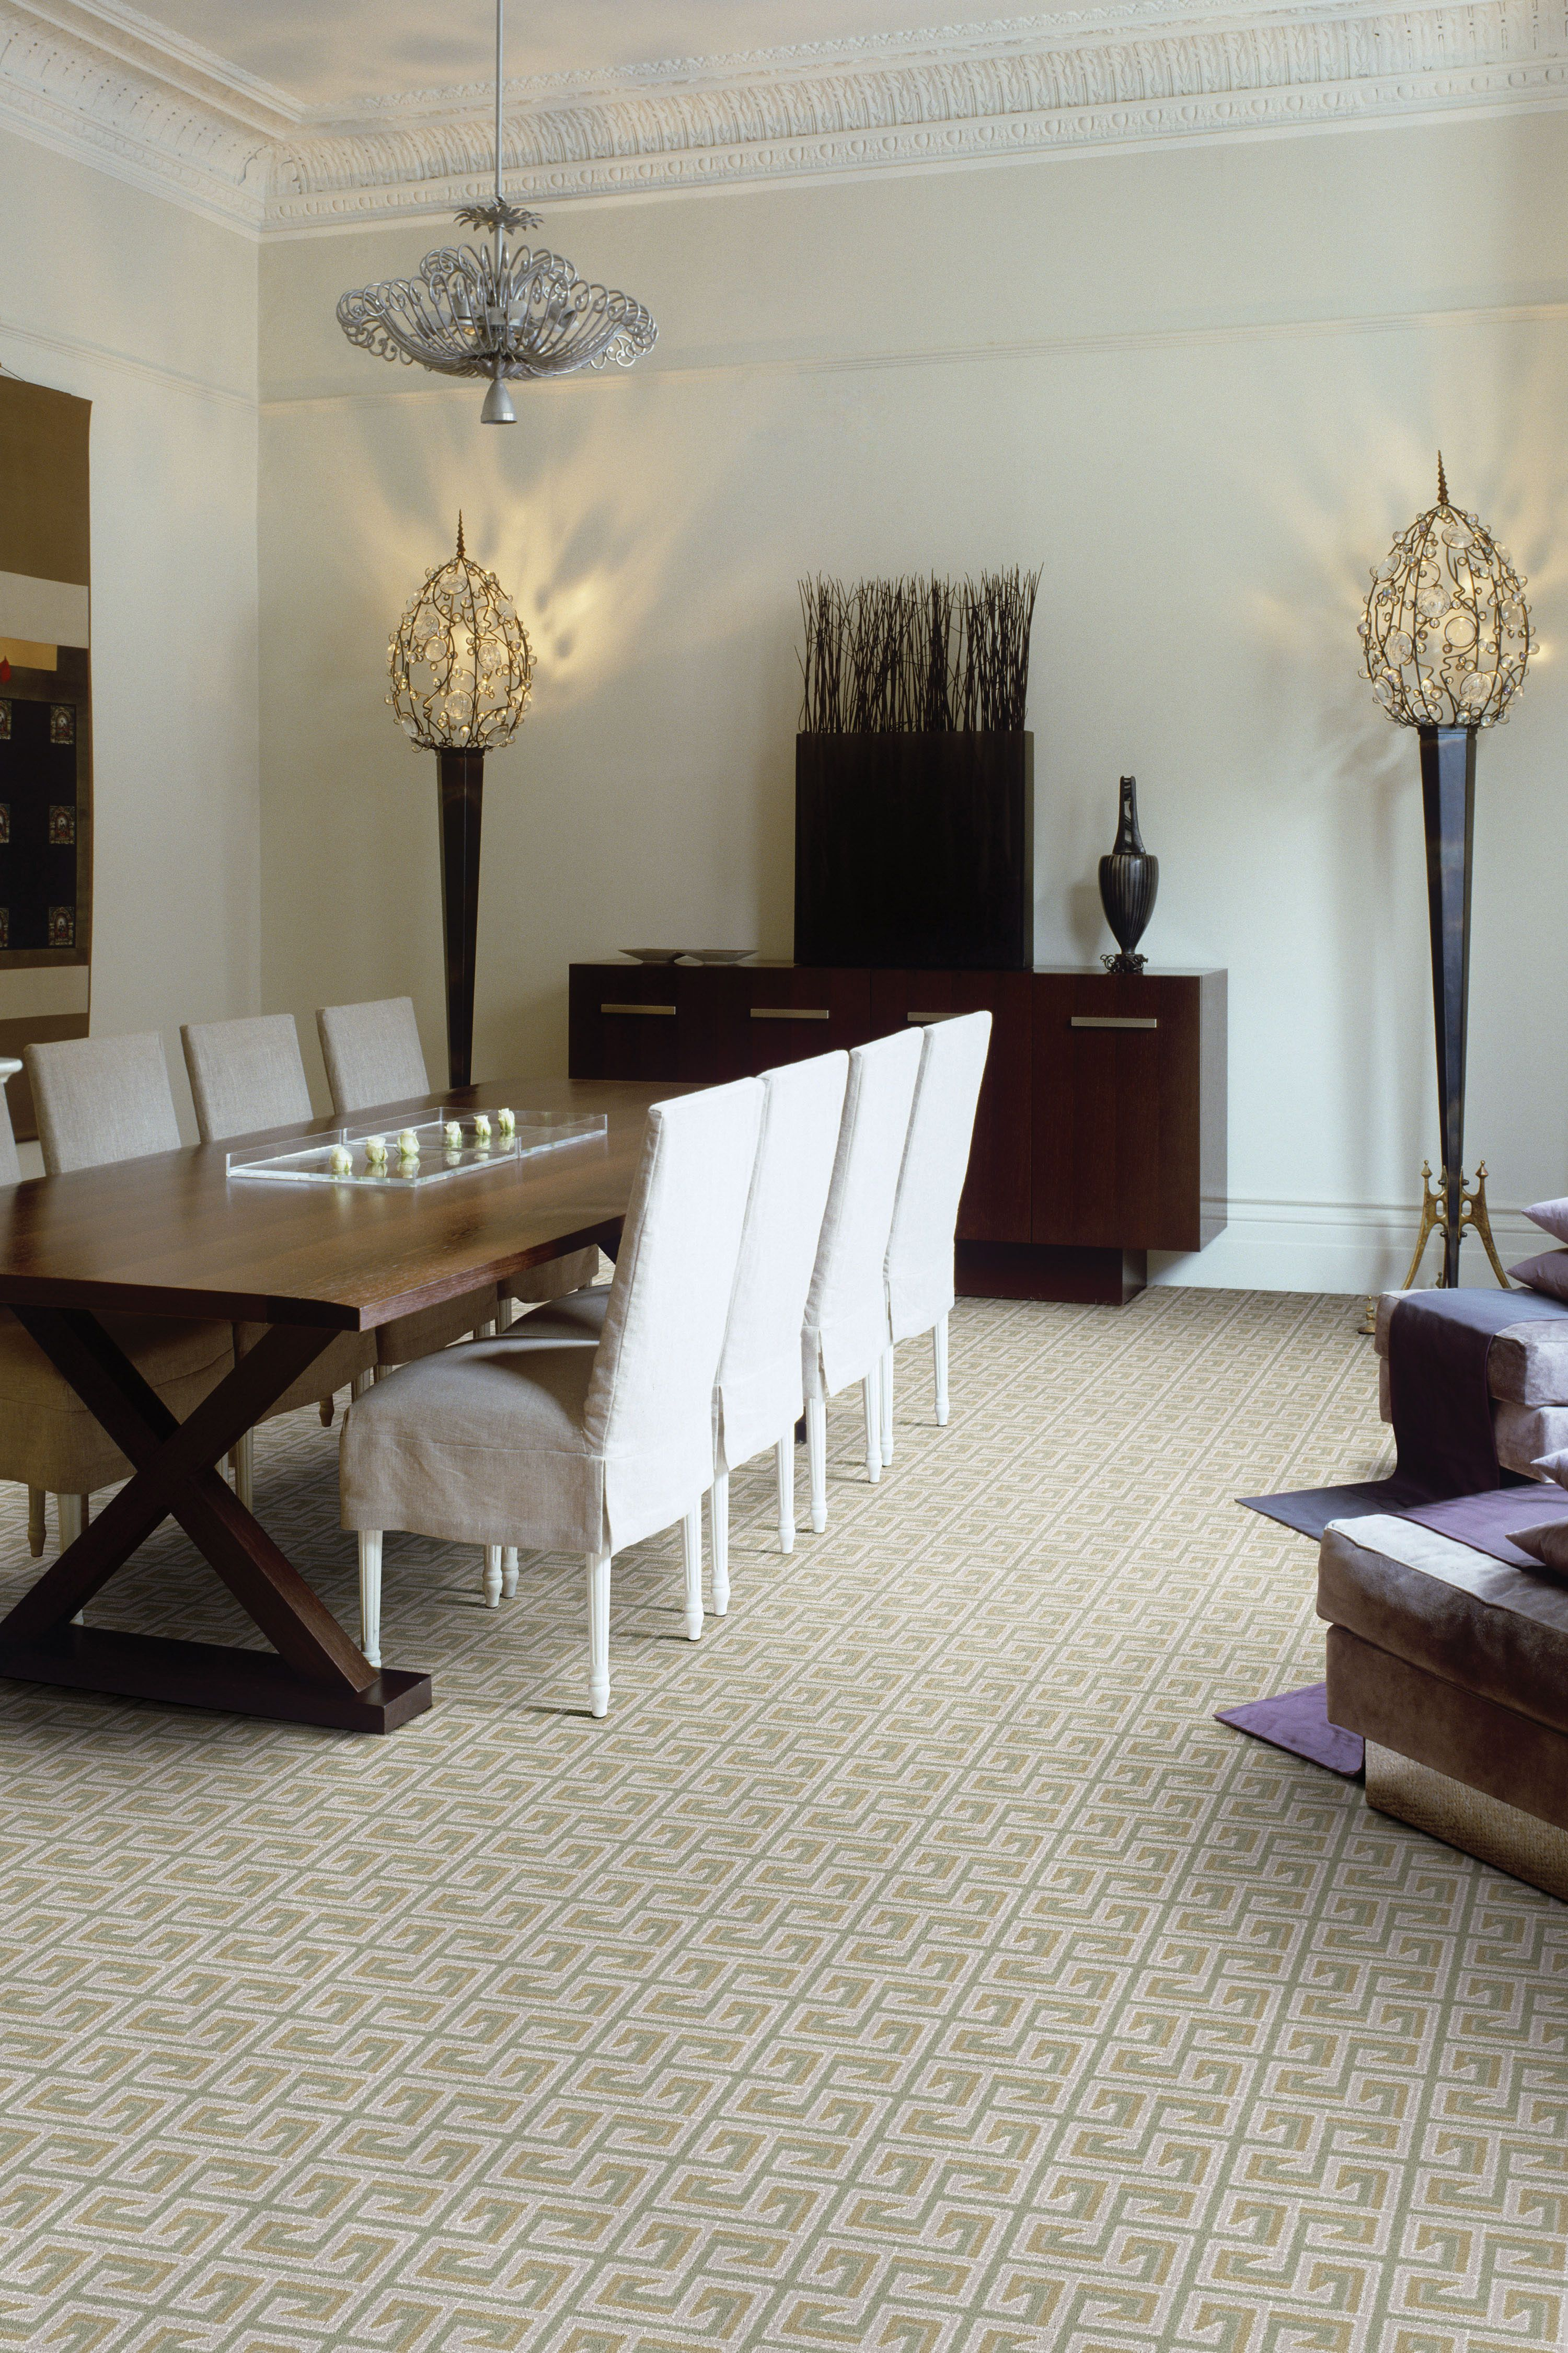 The Carpeting In This Room Is A Great Combo Of Beige And Grey Carpet Dining Room Modern Dining Room Area Rug Dining Room